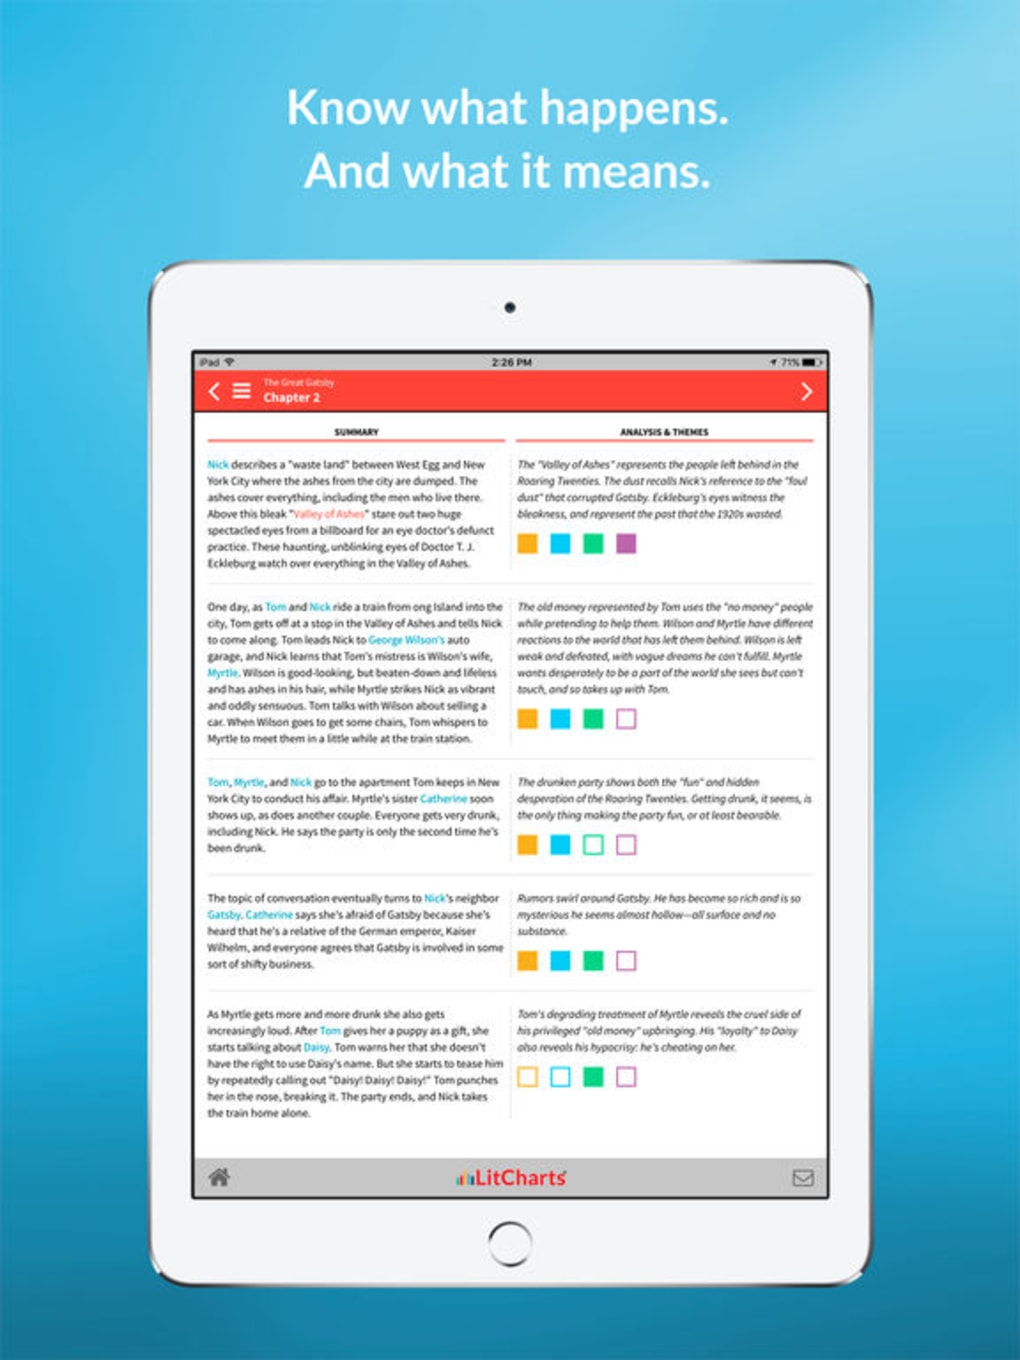 LitCharts for iPhone - Download